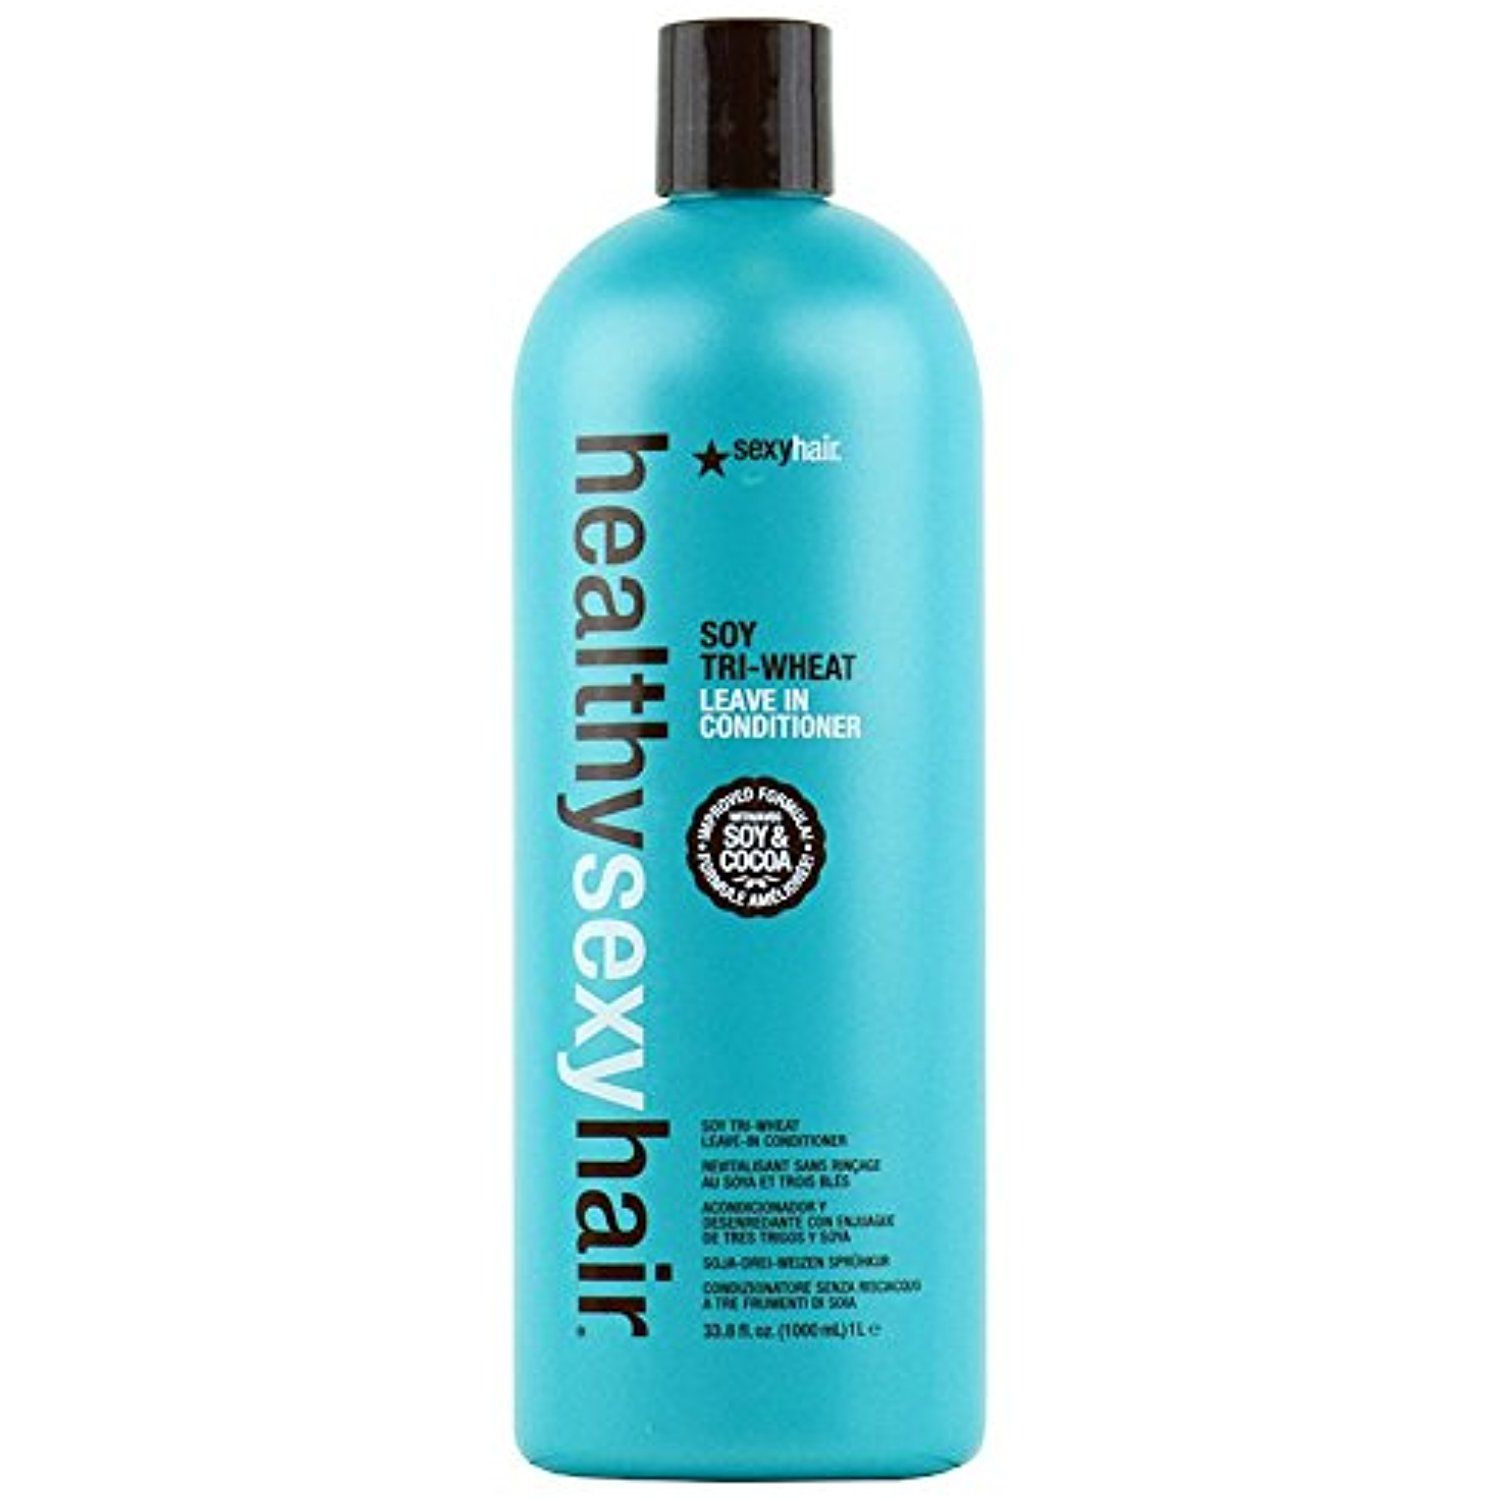 Healthy sexy hair leave in conditioner reviews